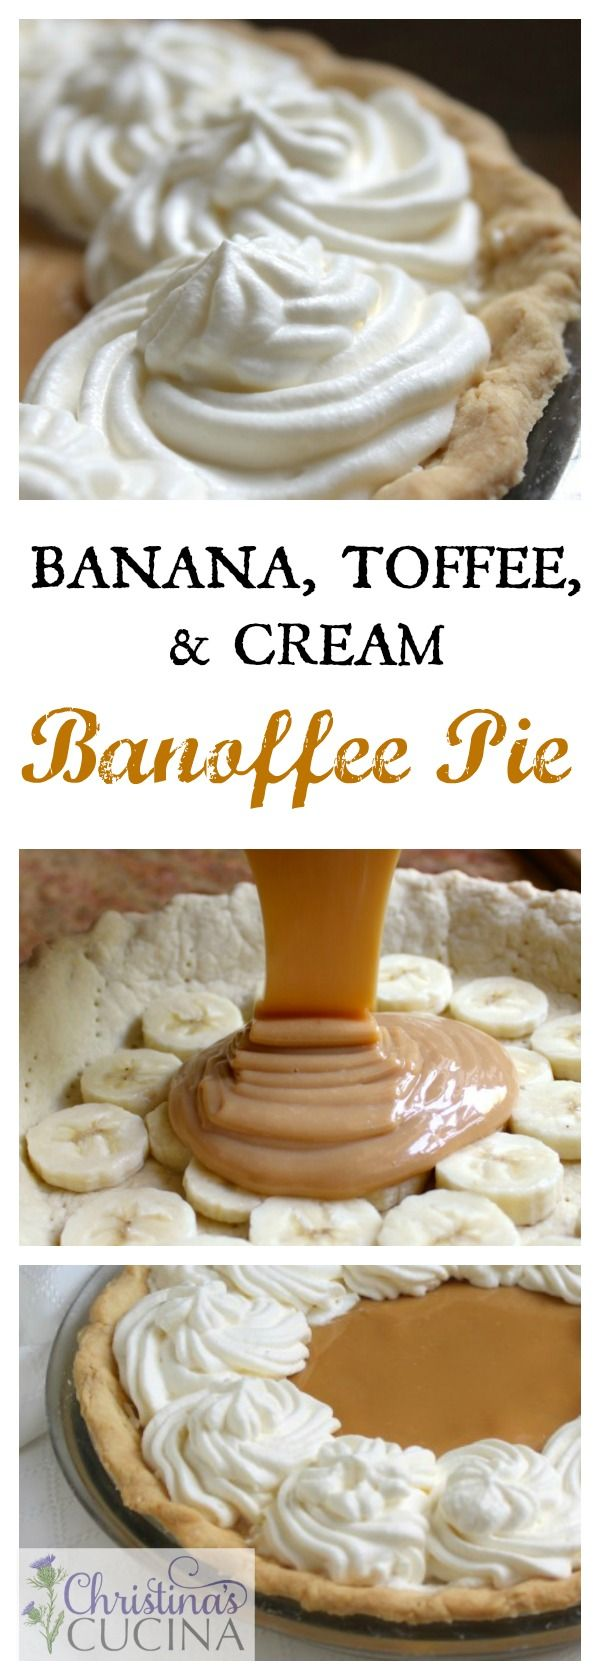 With a pre-baked crust, just layer bananas, add the caramel sauce and top with whipped cream.